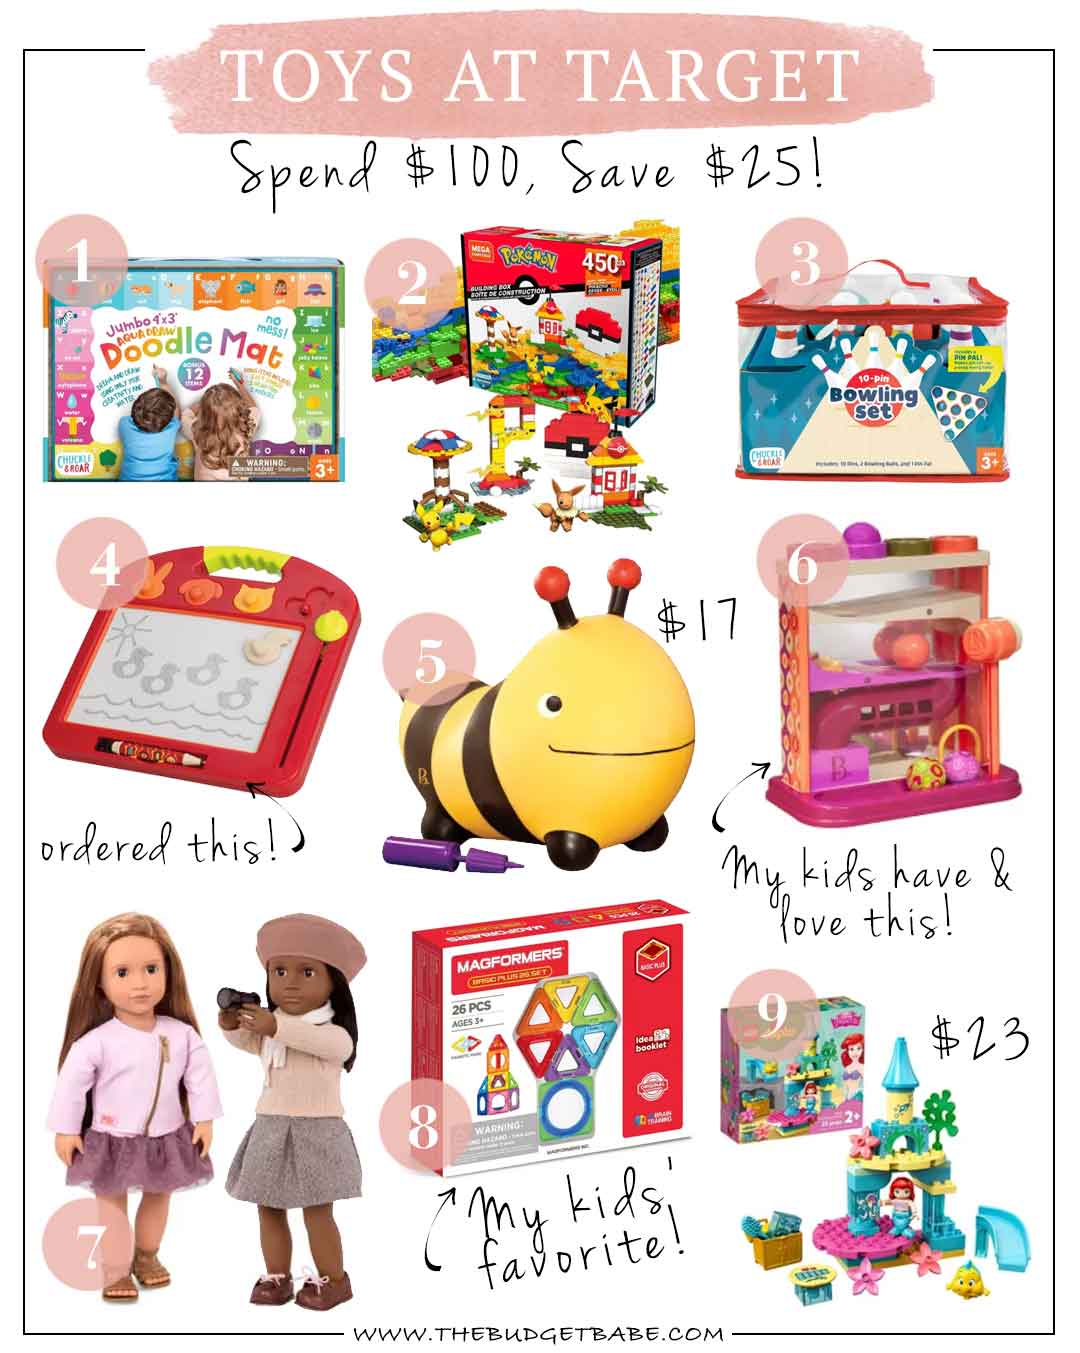 Target toy sale, spend $100 get $25 off!